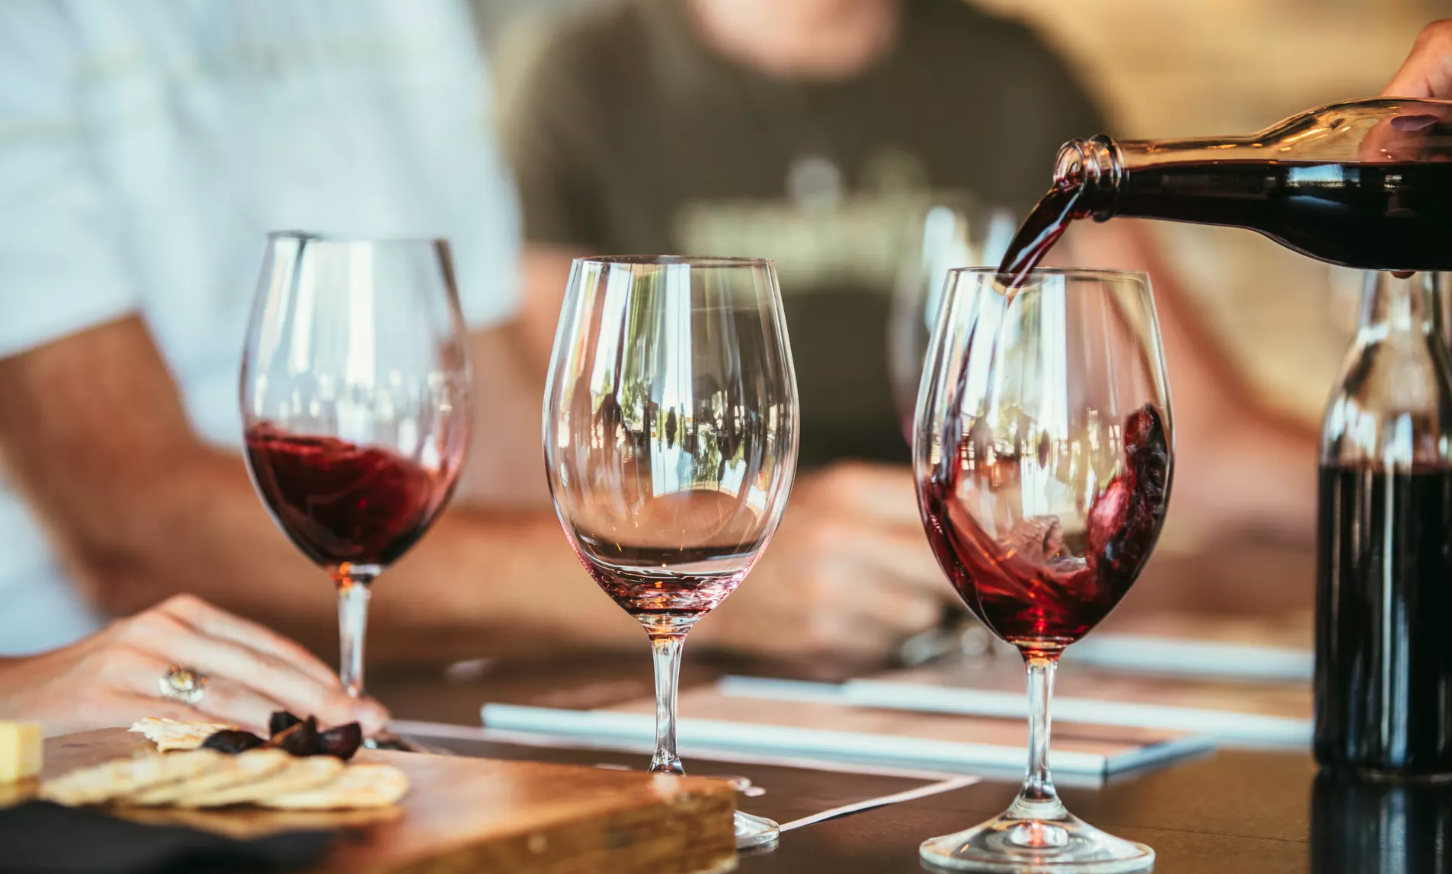 Any amount of alcohol consumption is bad for your health according to a new study